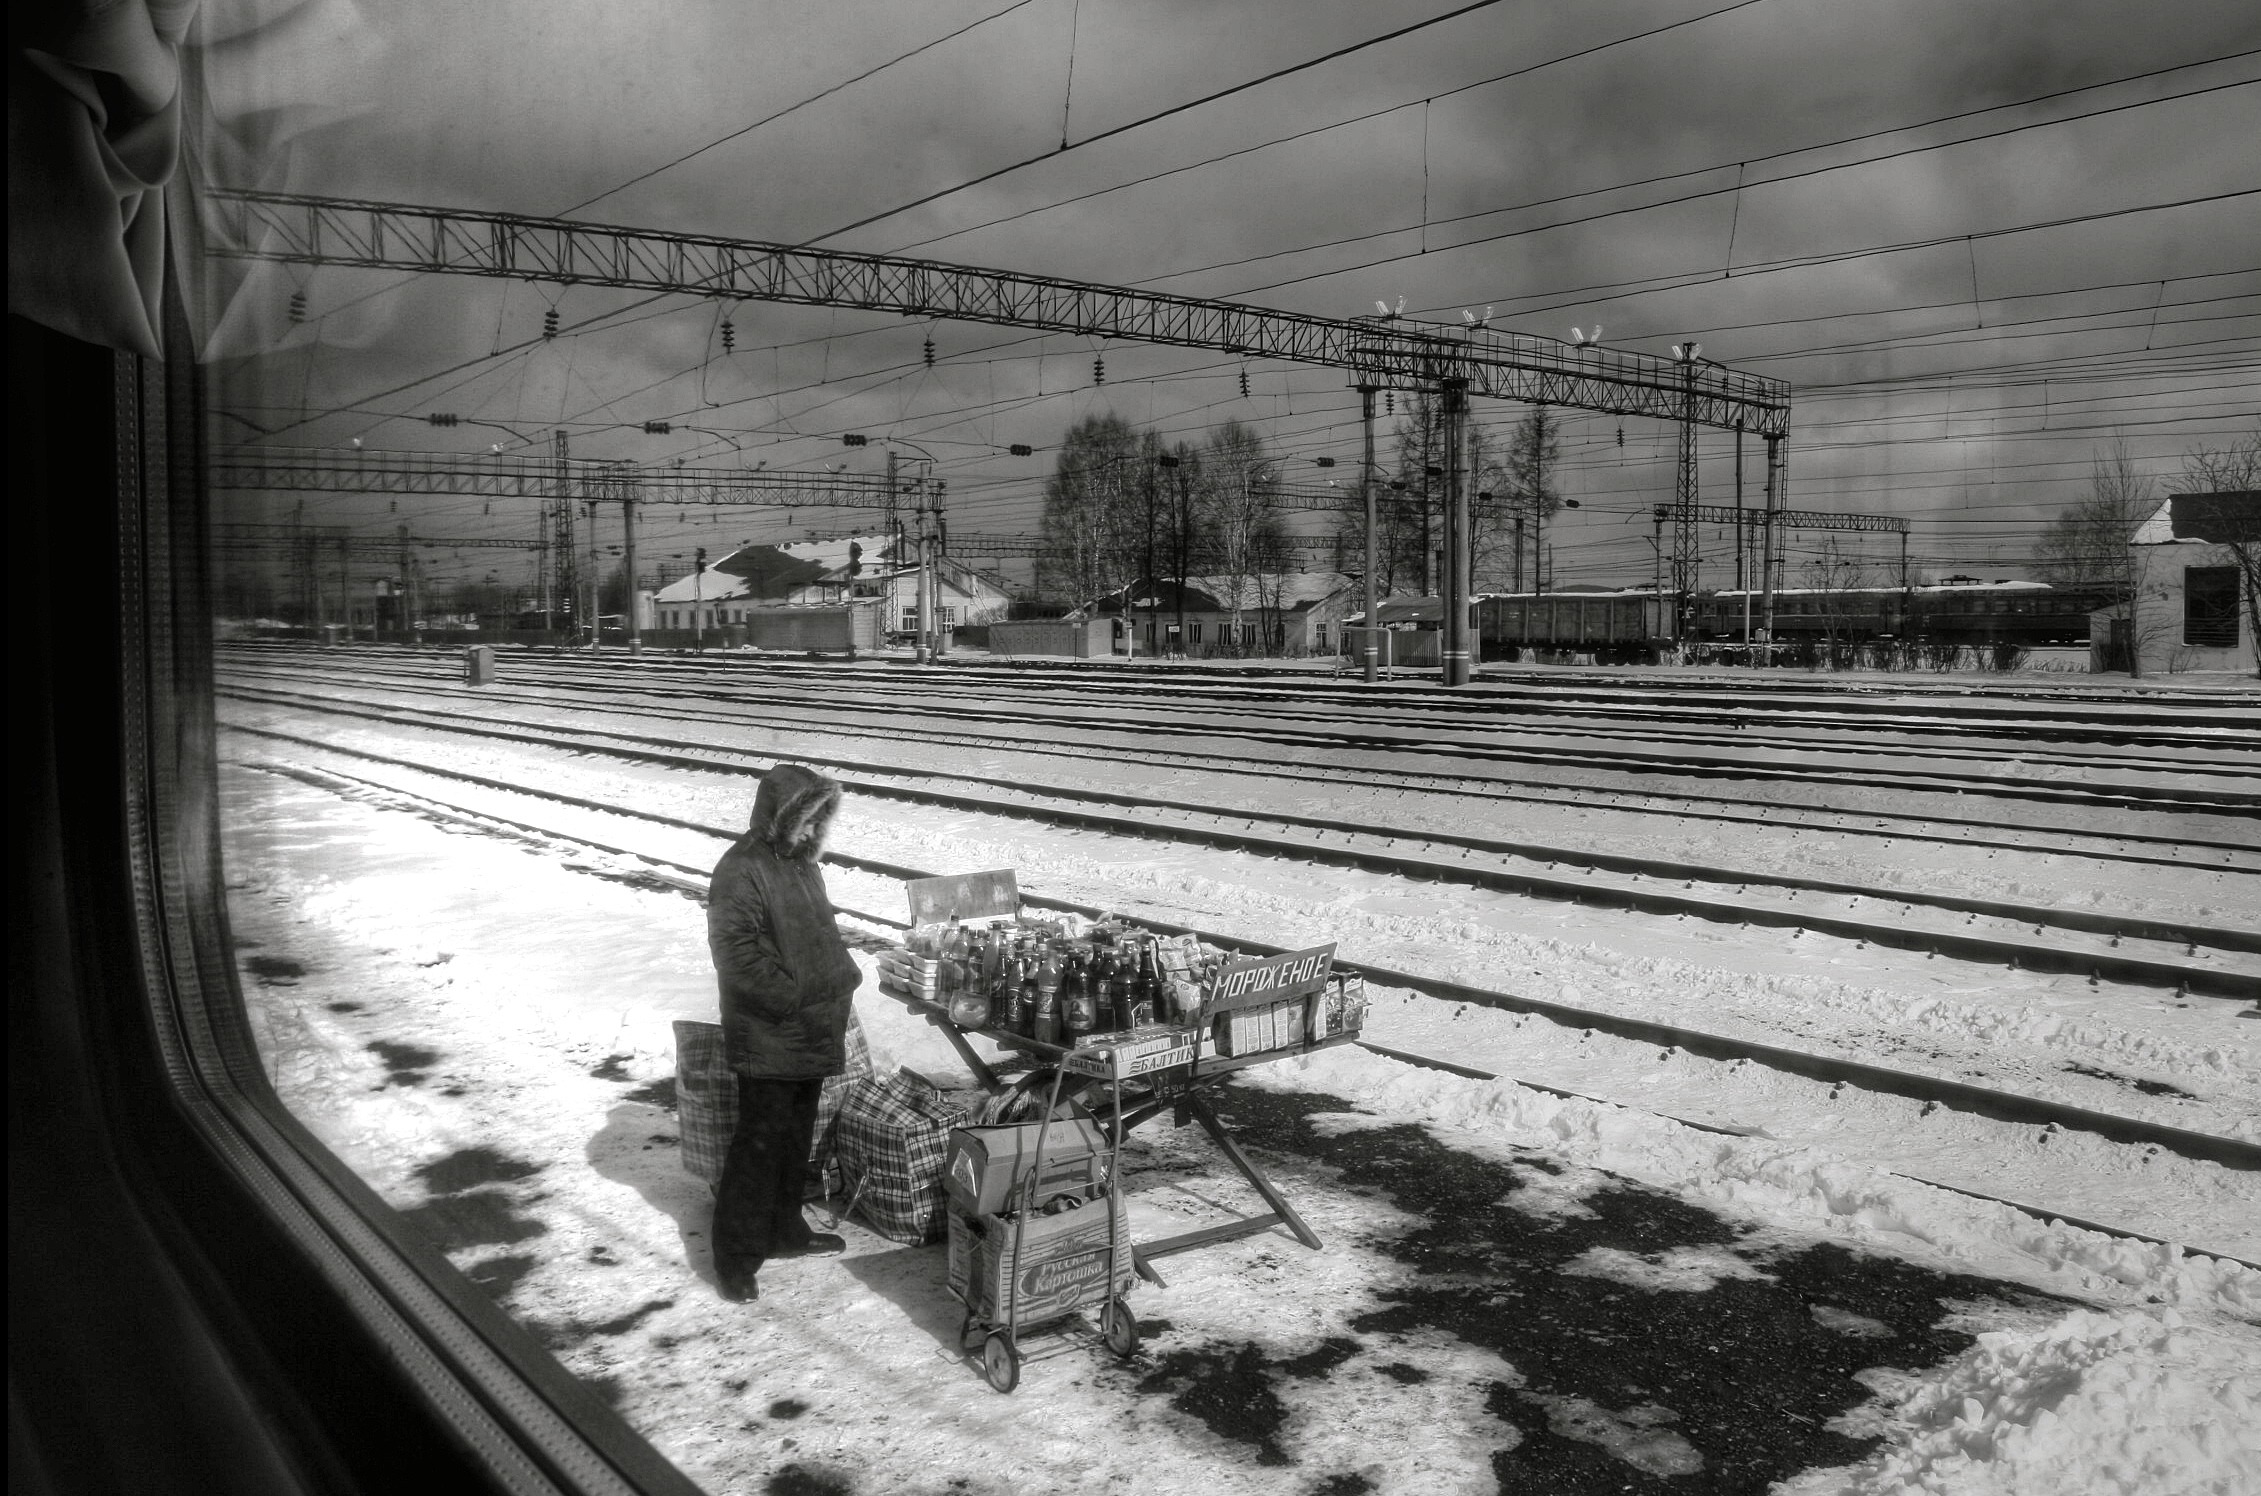 The train trundles past small villages and dachas and then stops in a cacophony as people run down the carriages selling toys, beer, dried fish, meat pies and ice cream.